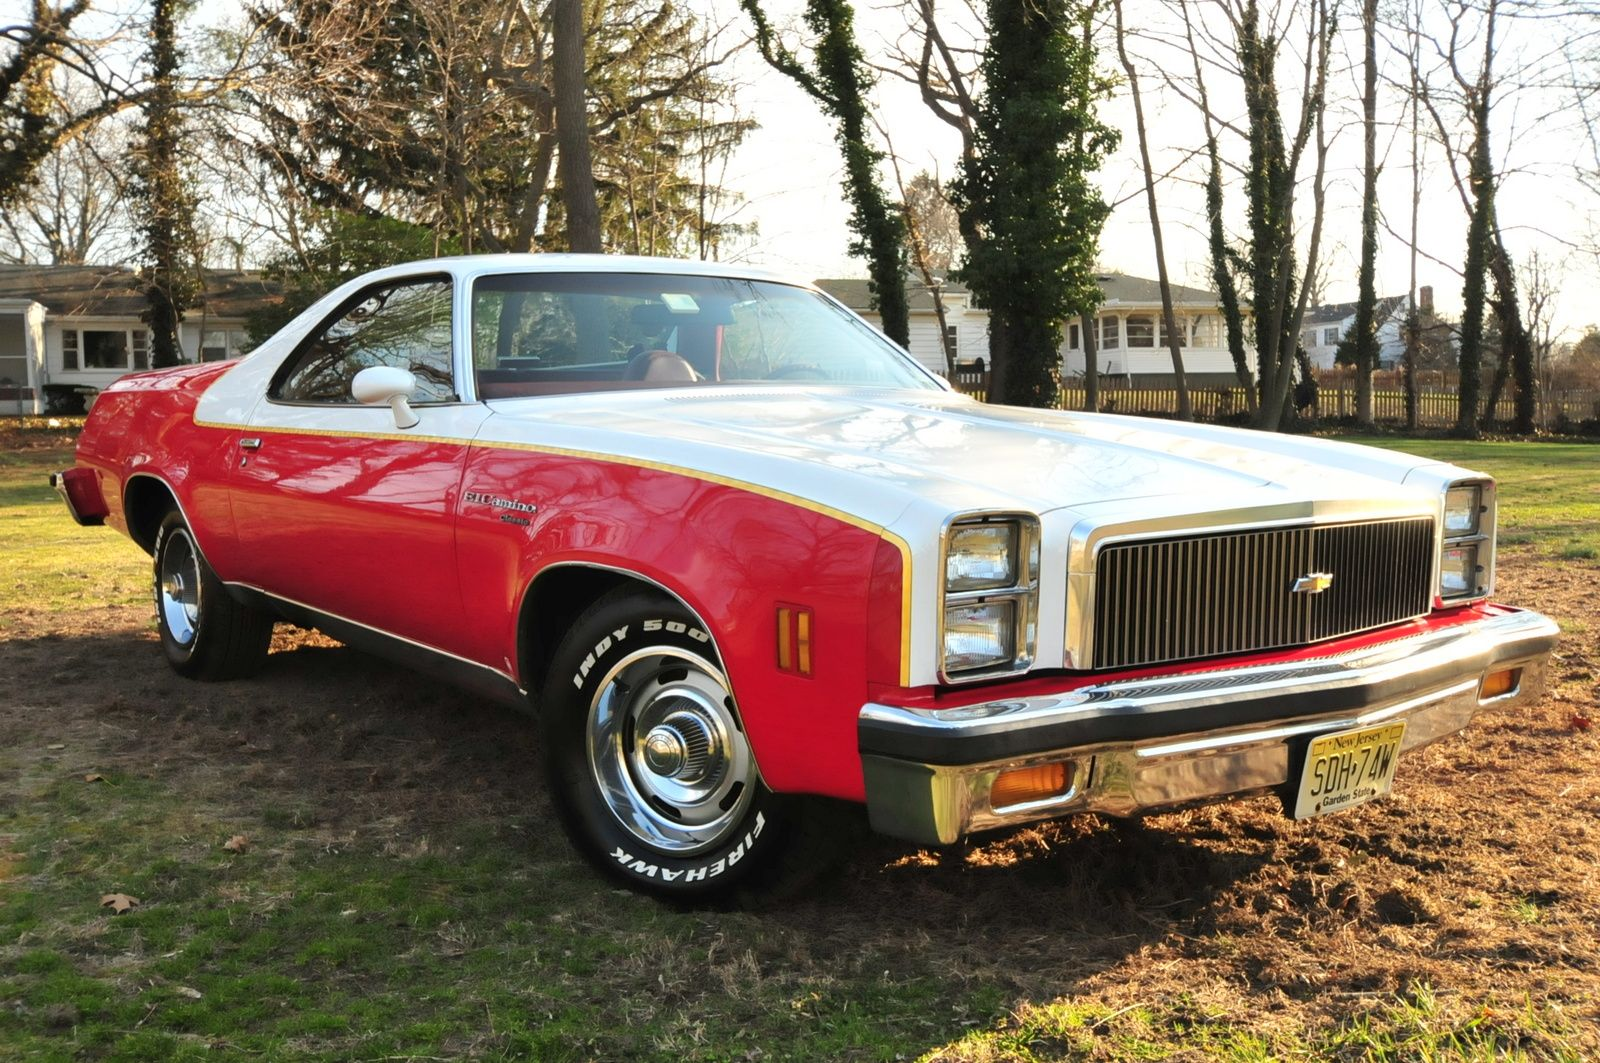 All Chevy 1977 chevrolet : 1977 Chevrolet El Camino. Find parts for this classic beauty at ...